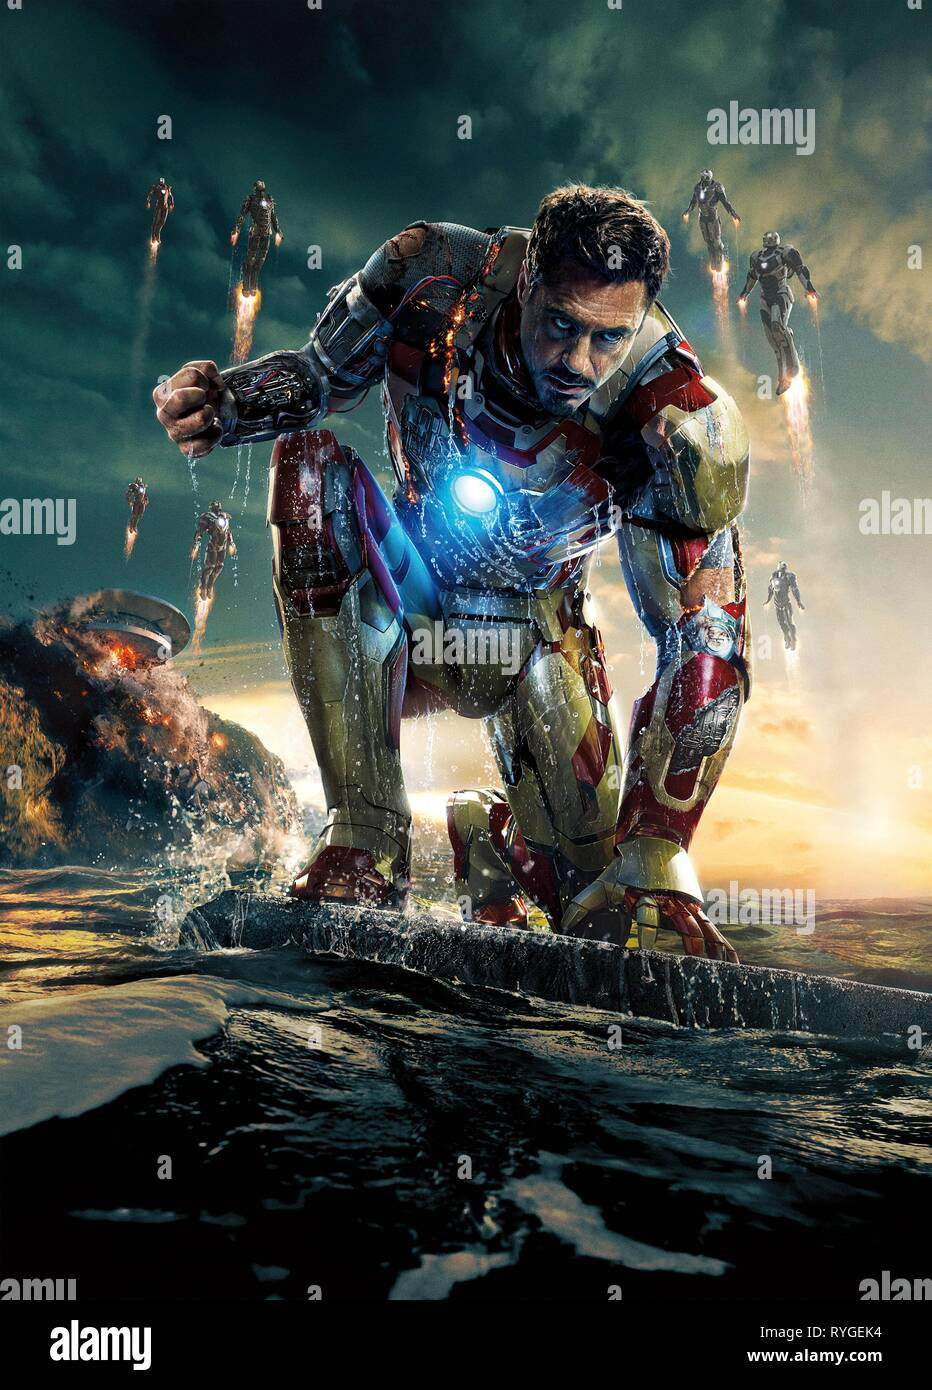 ROBERT DOWNEY JR., IRON MAN 3, 2013 - Stock Image